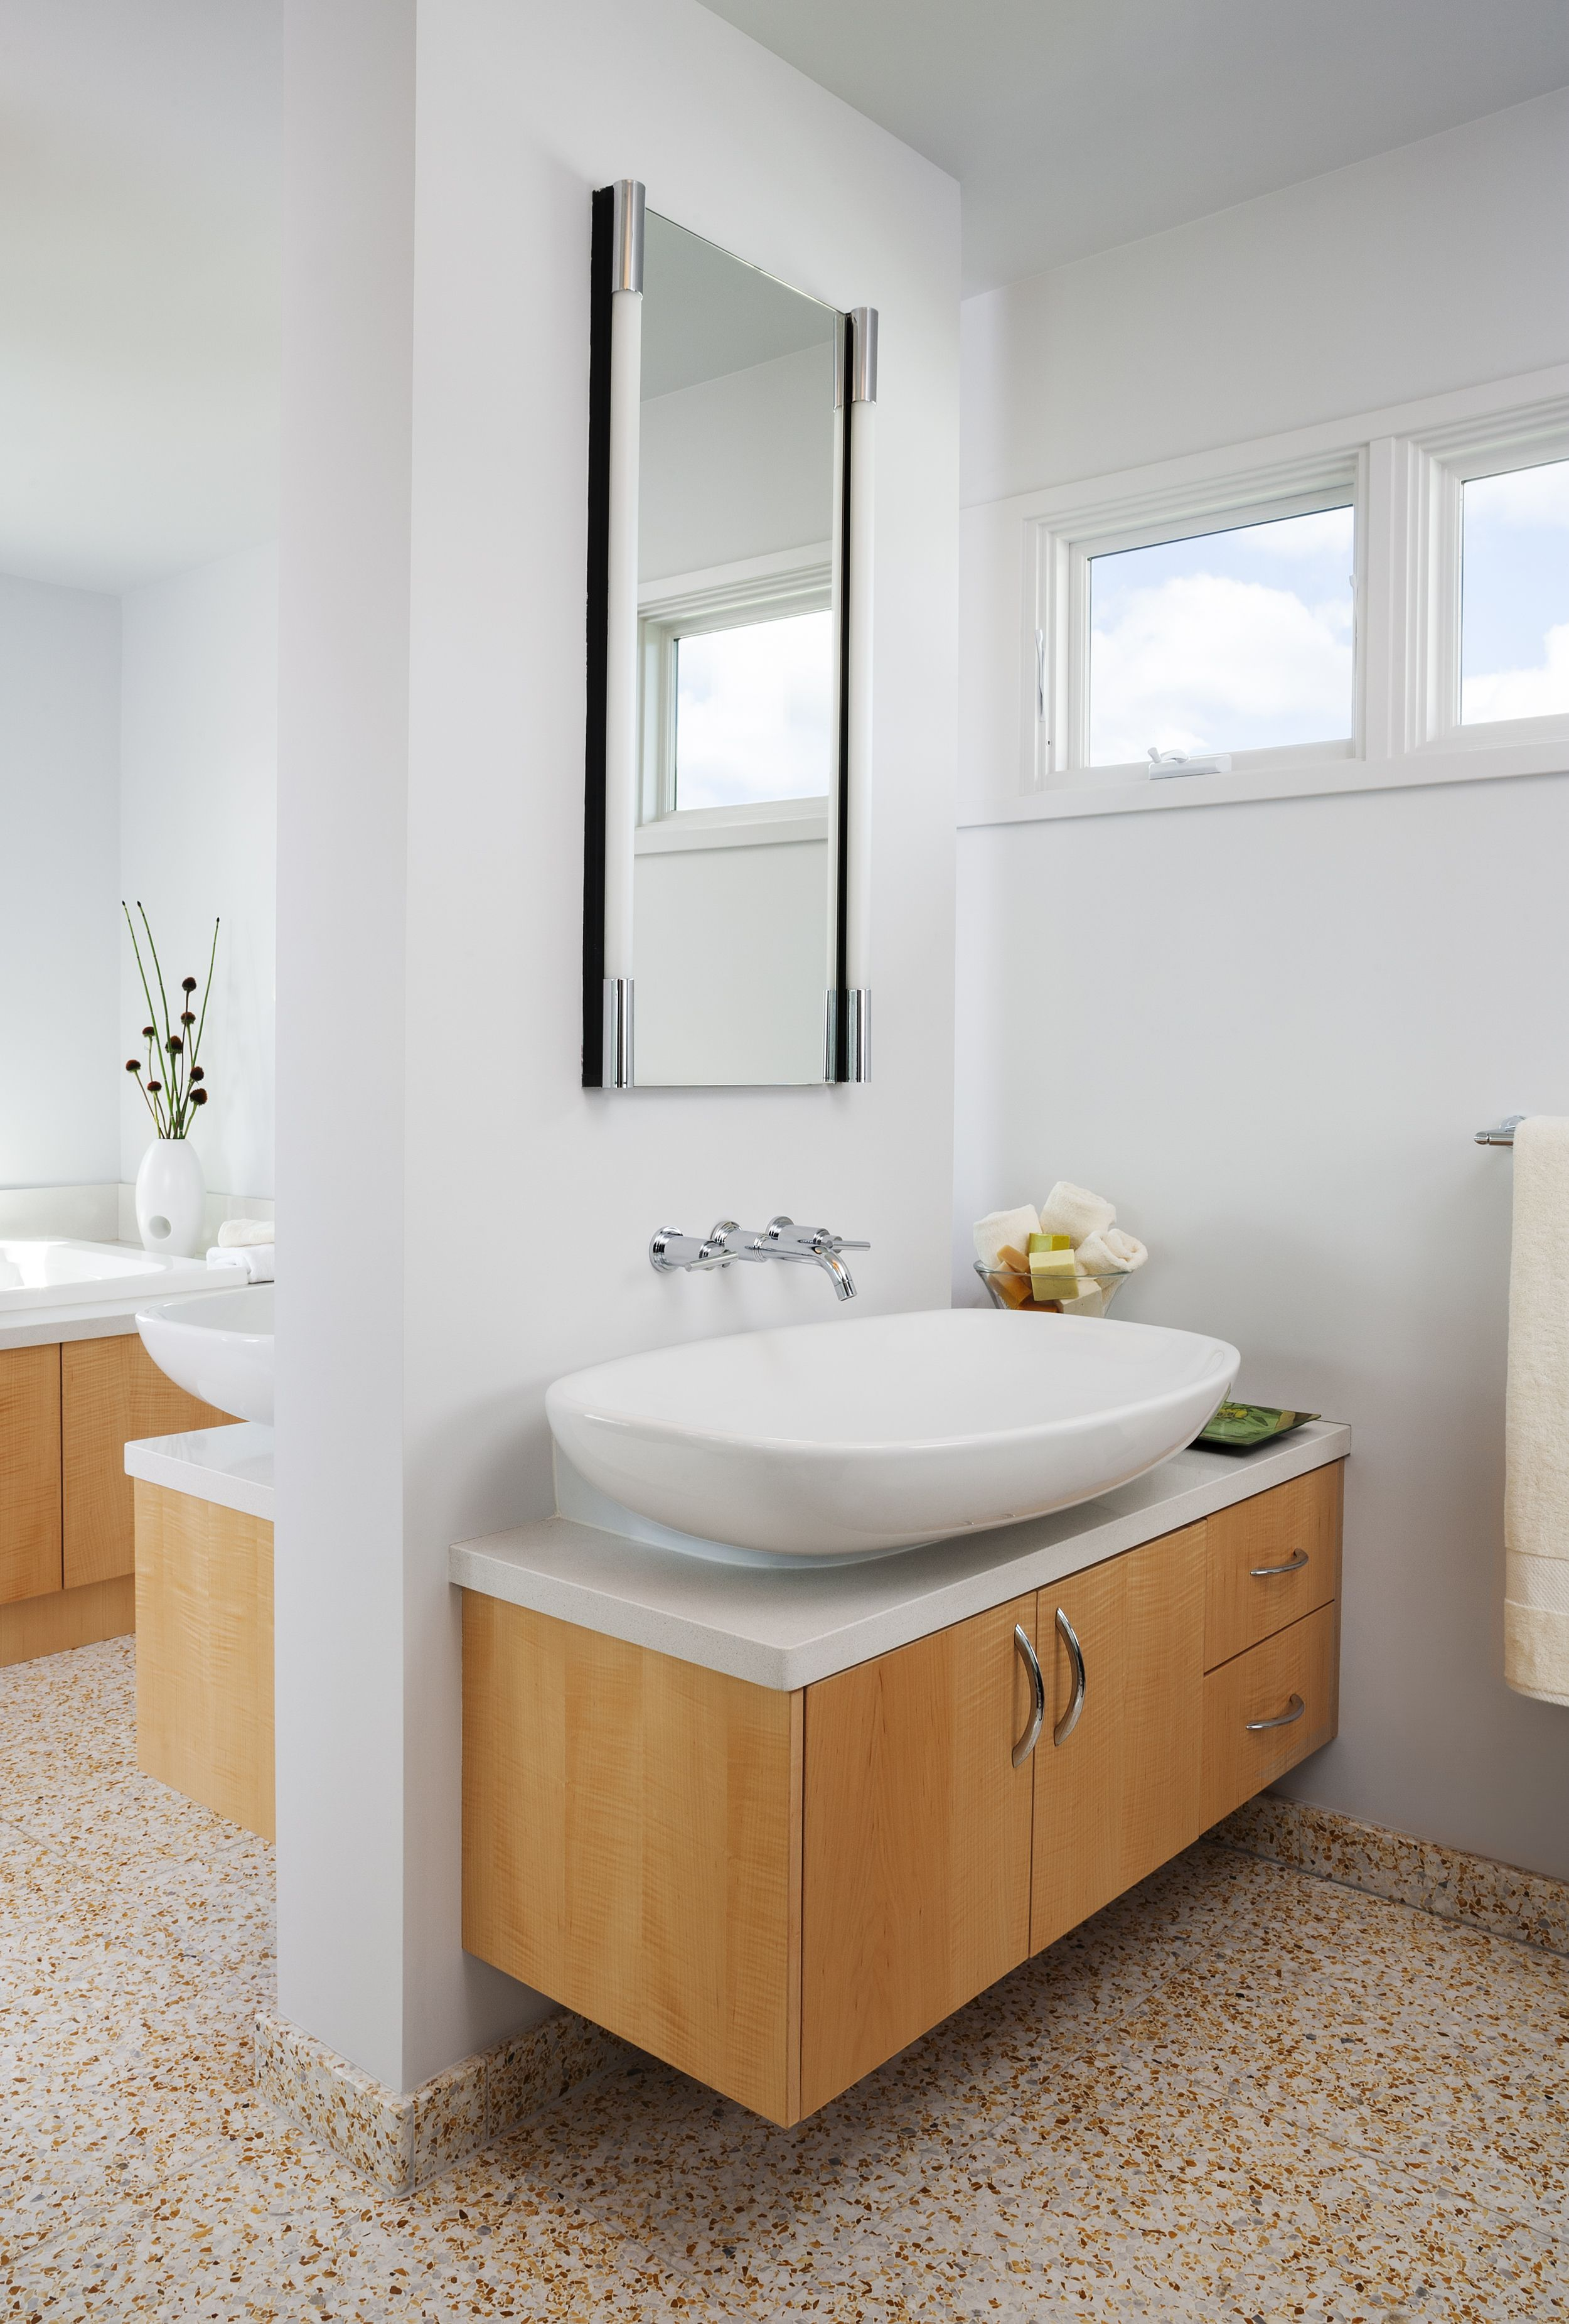 A Warm Bright Color Palette Helps A Small Bathroom Feel More